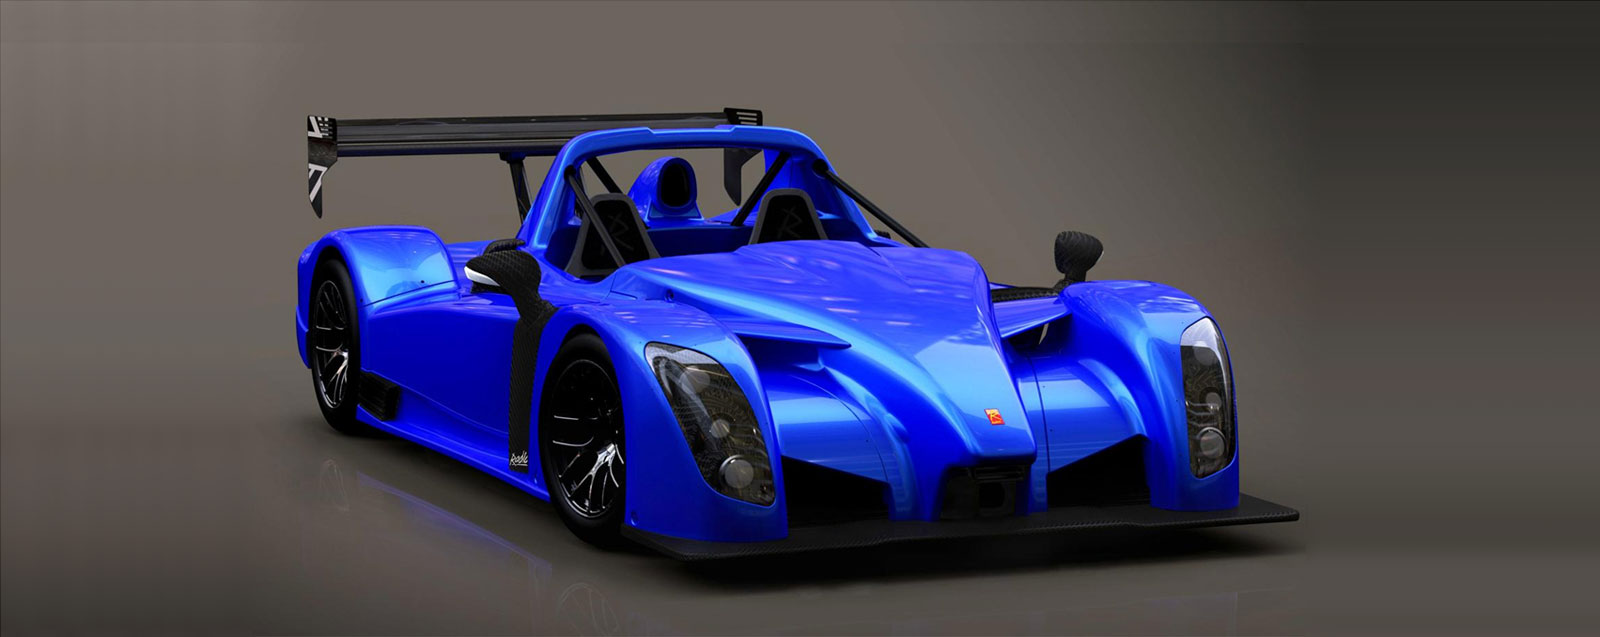 The New Radical SR8 RSX